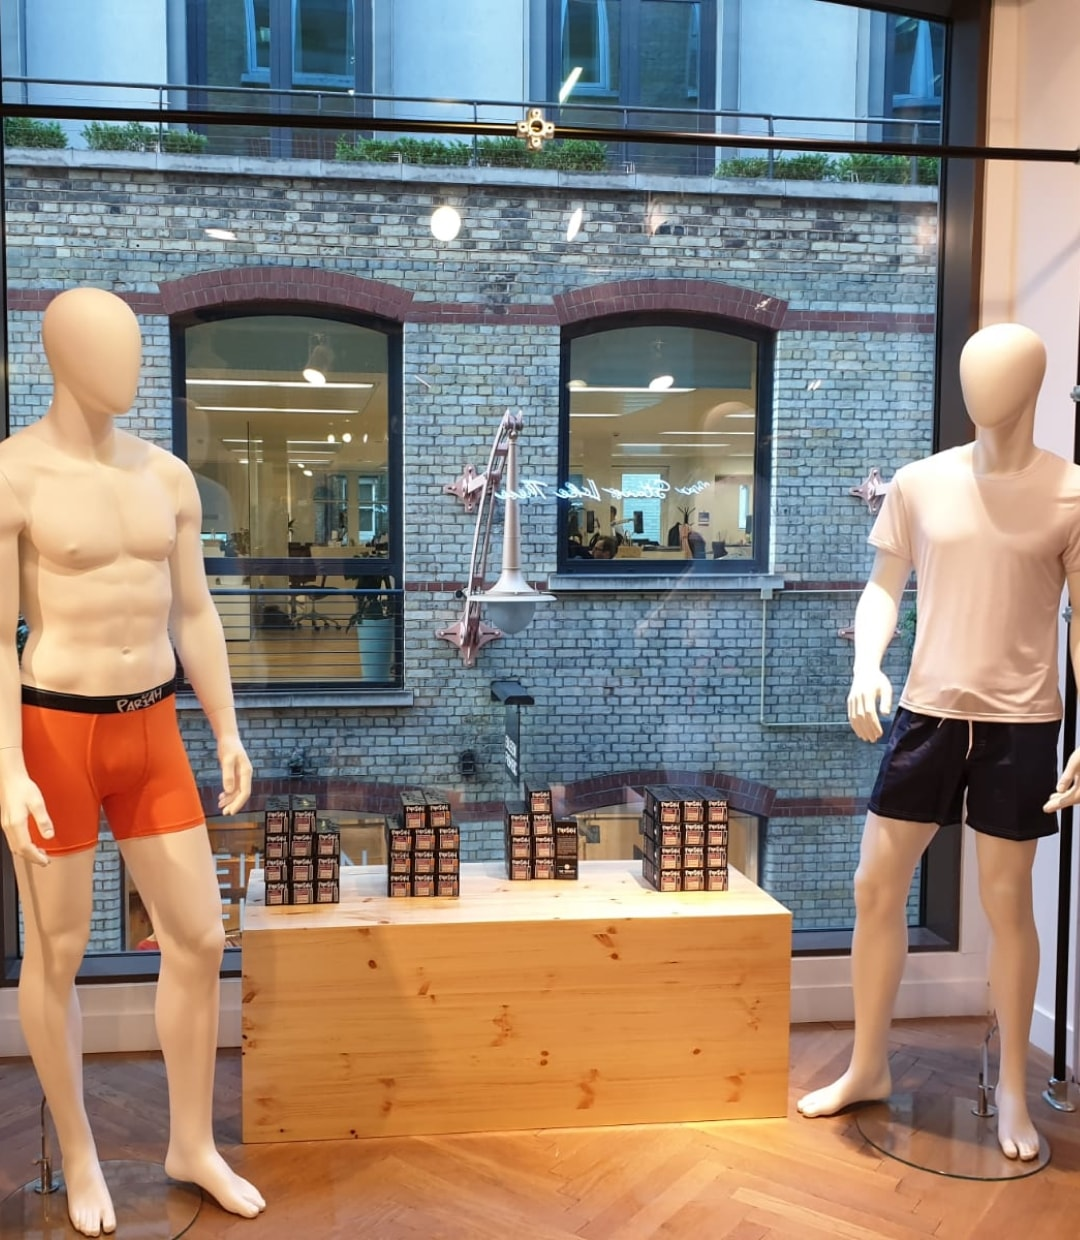 a male mannequin wearing orange pariah underwear. a male mannequin wearing white t-shirt and beach shorts.